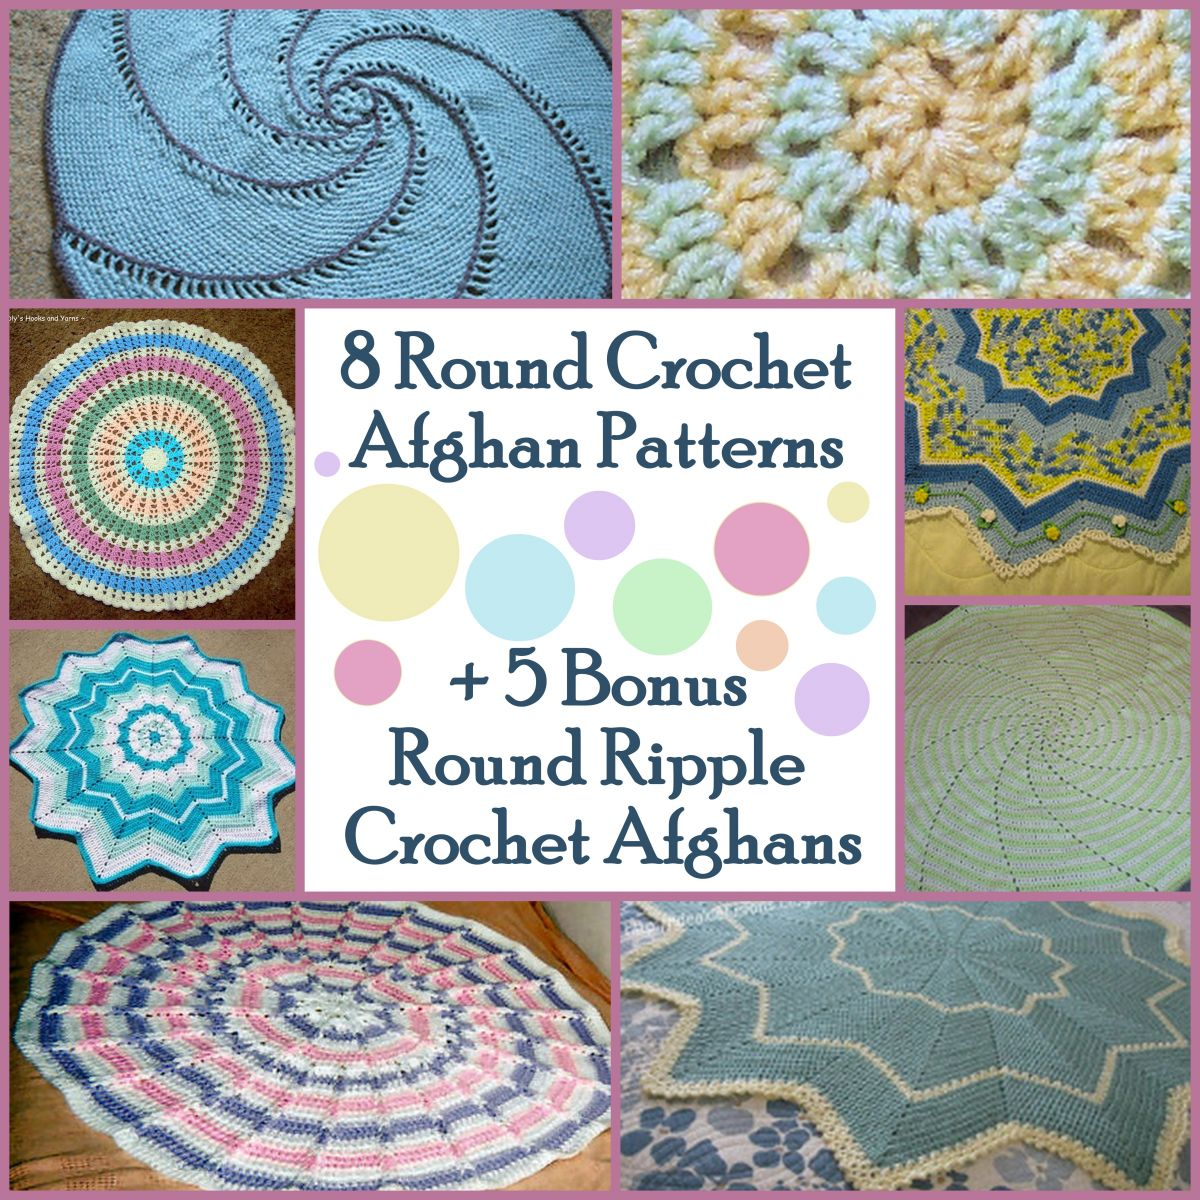 Crochet Pattern Round Ripple Afghan : 10 Round Crochet Afghan Patterns + 7 Bonus Round Ripple ...